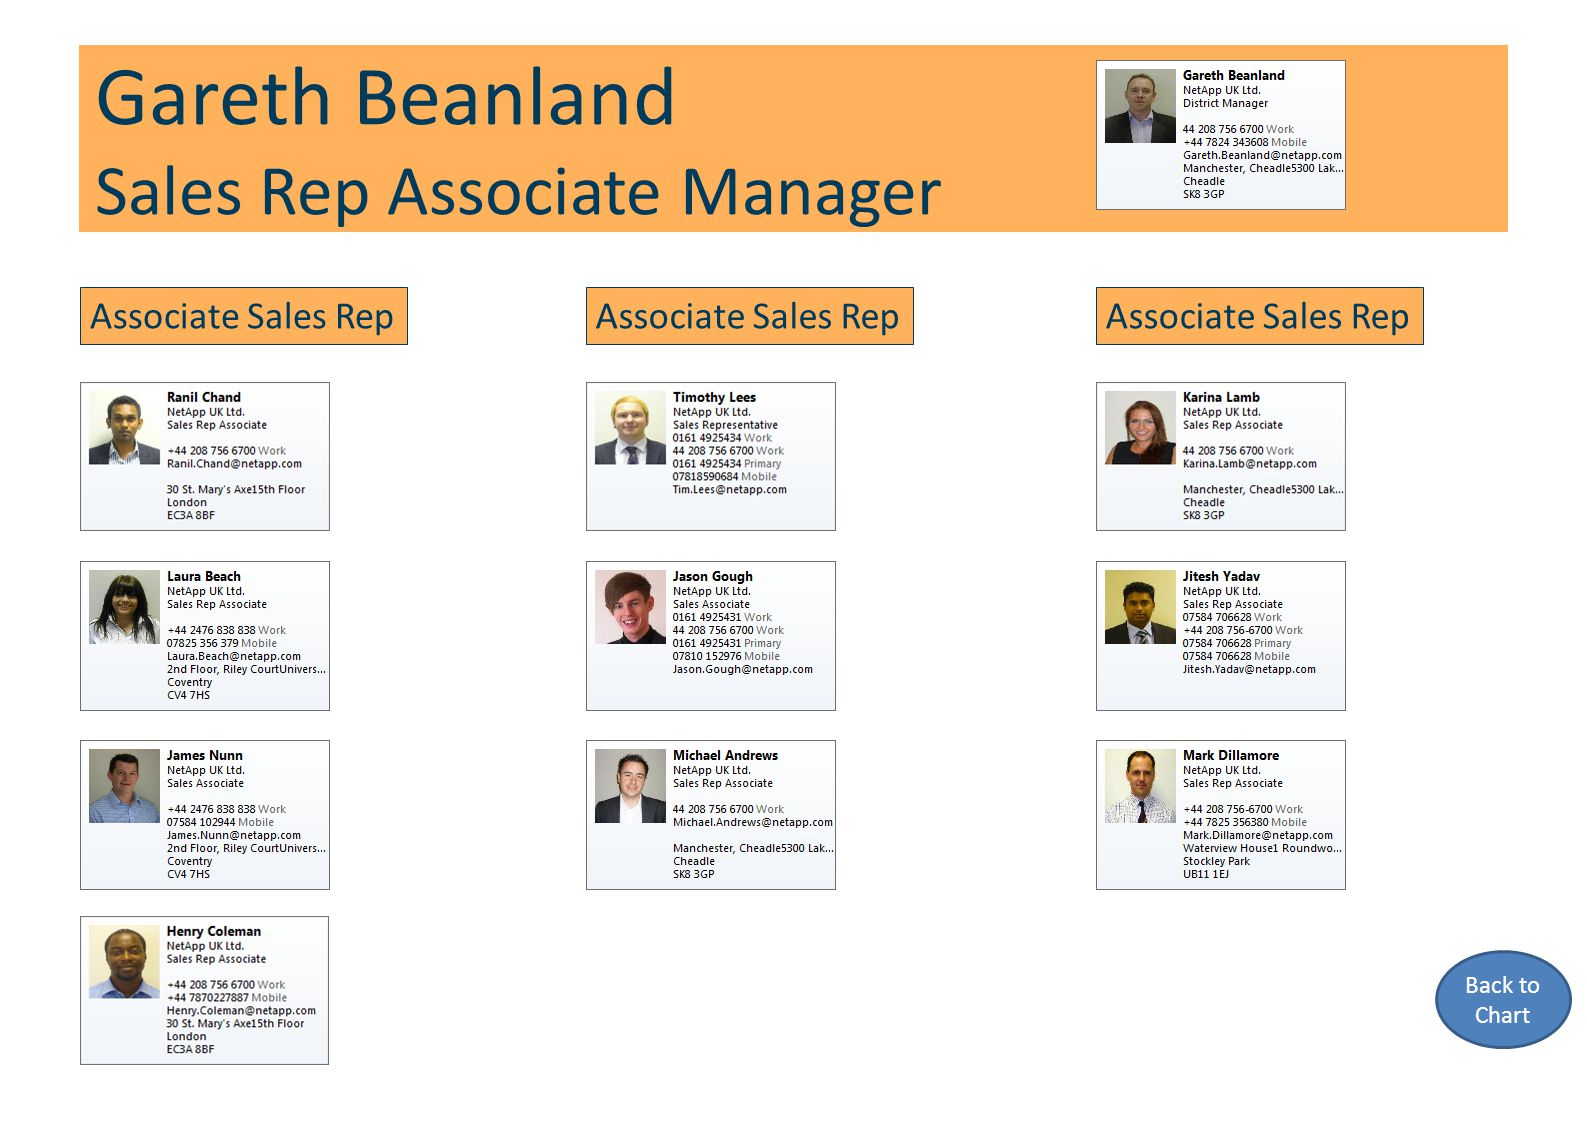 Gareth Beanland Sales Rep Associate Manager